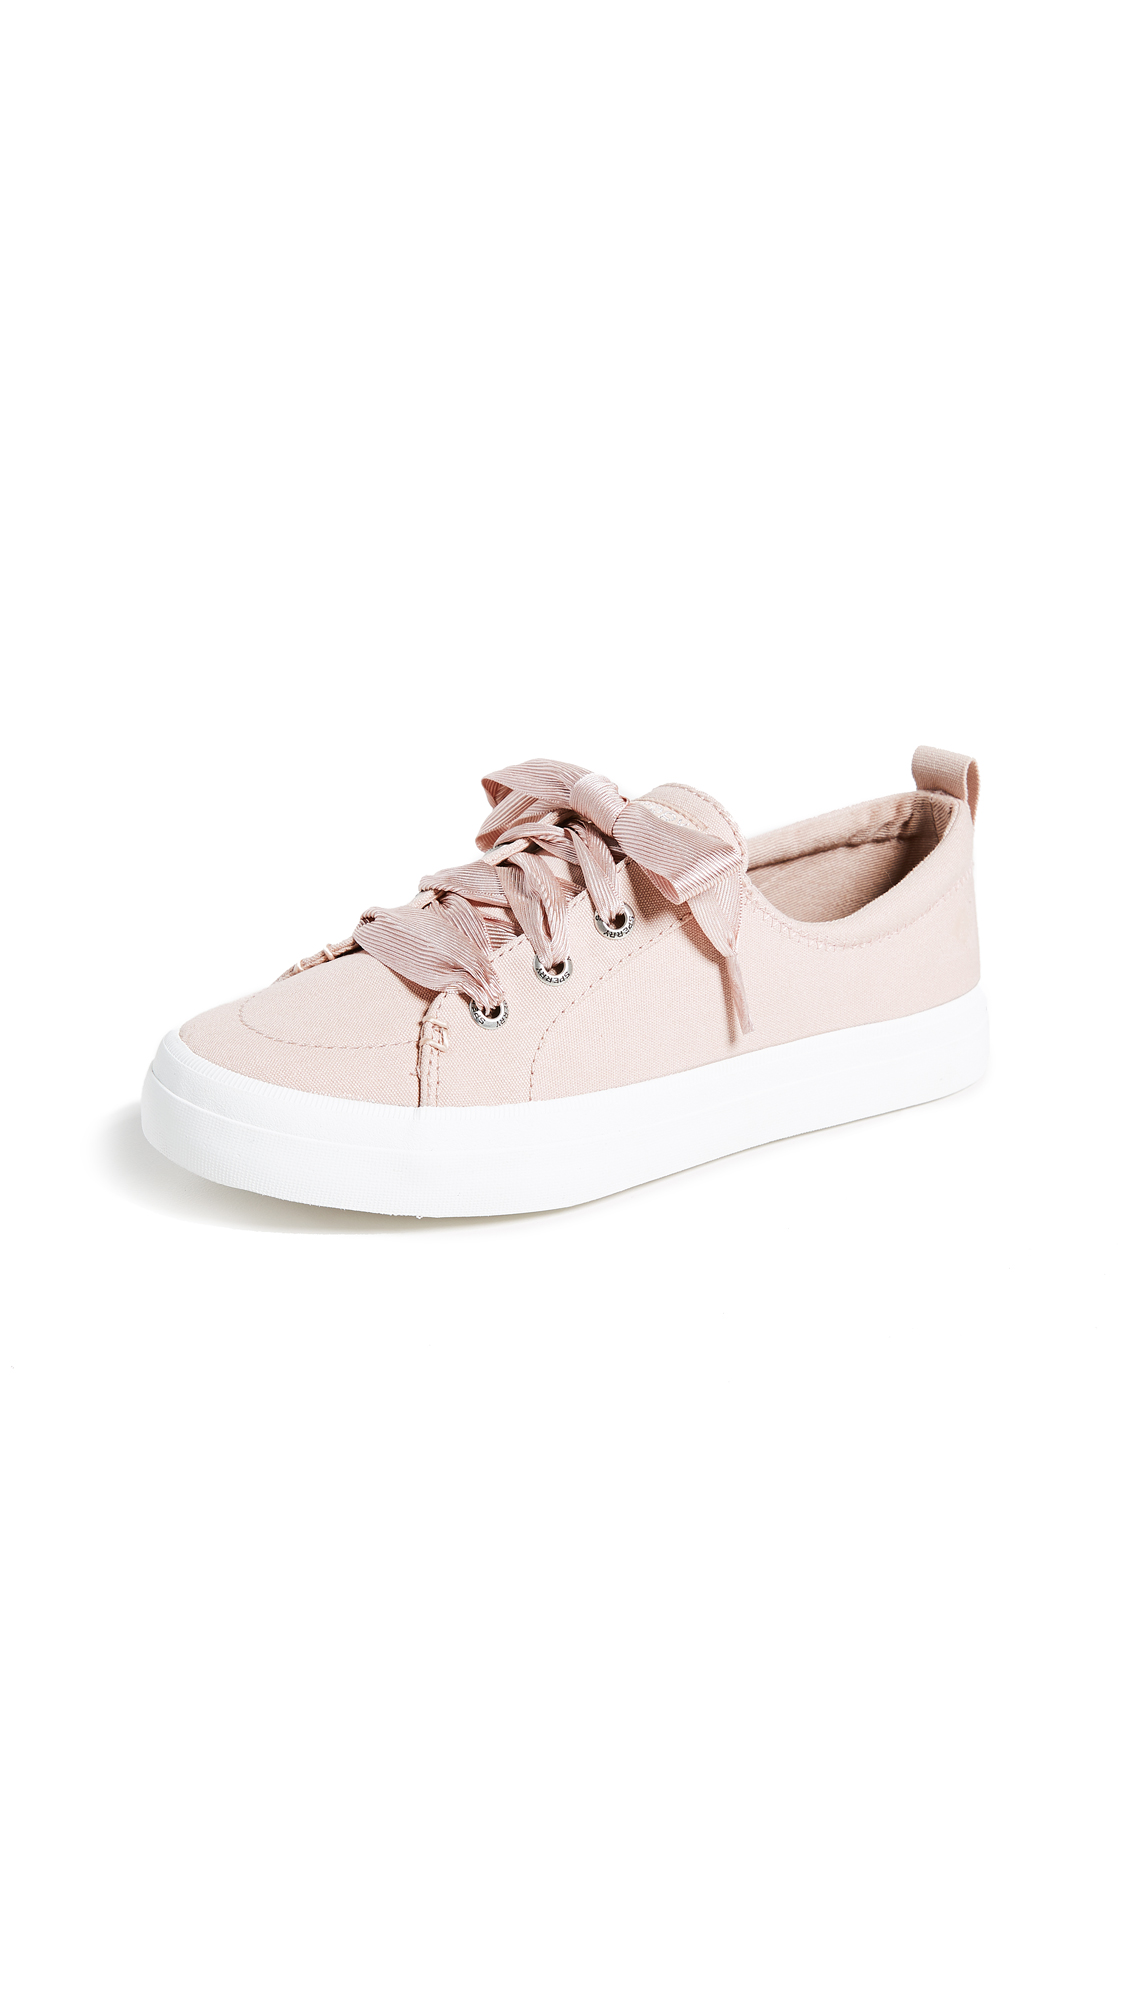 Sperry Crest Vibe Satin Lace Sneakers - Rose Dust